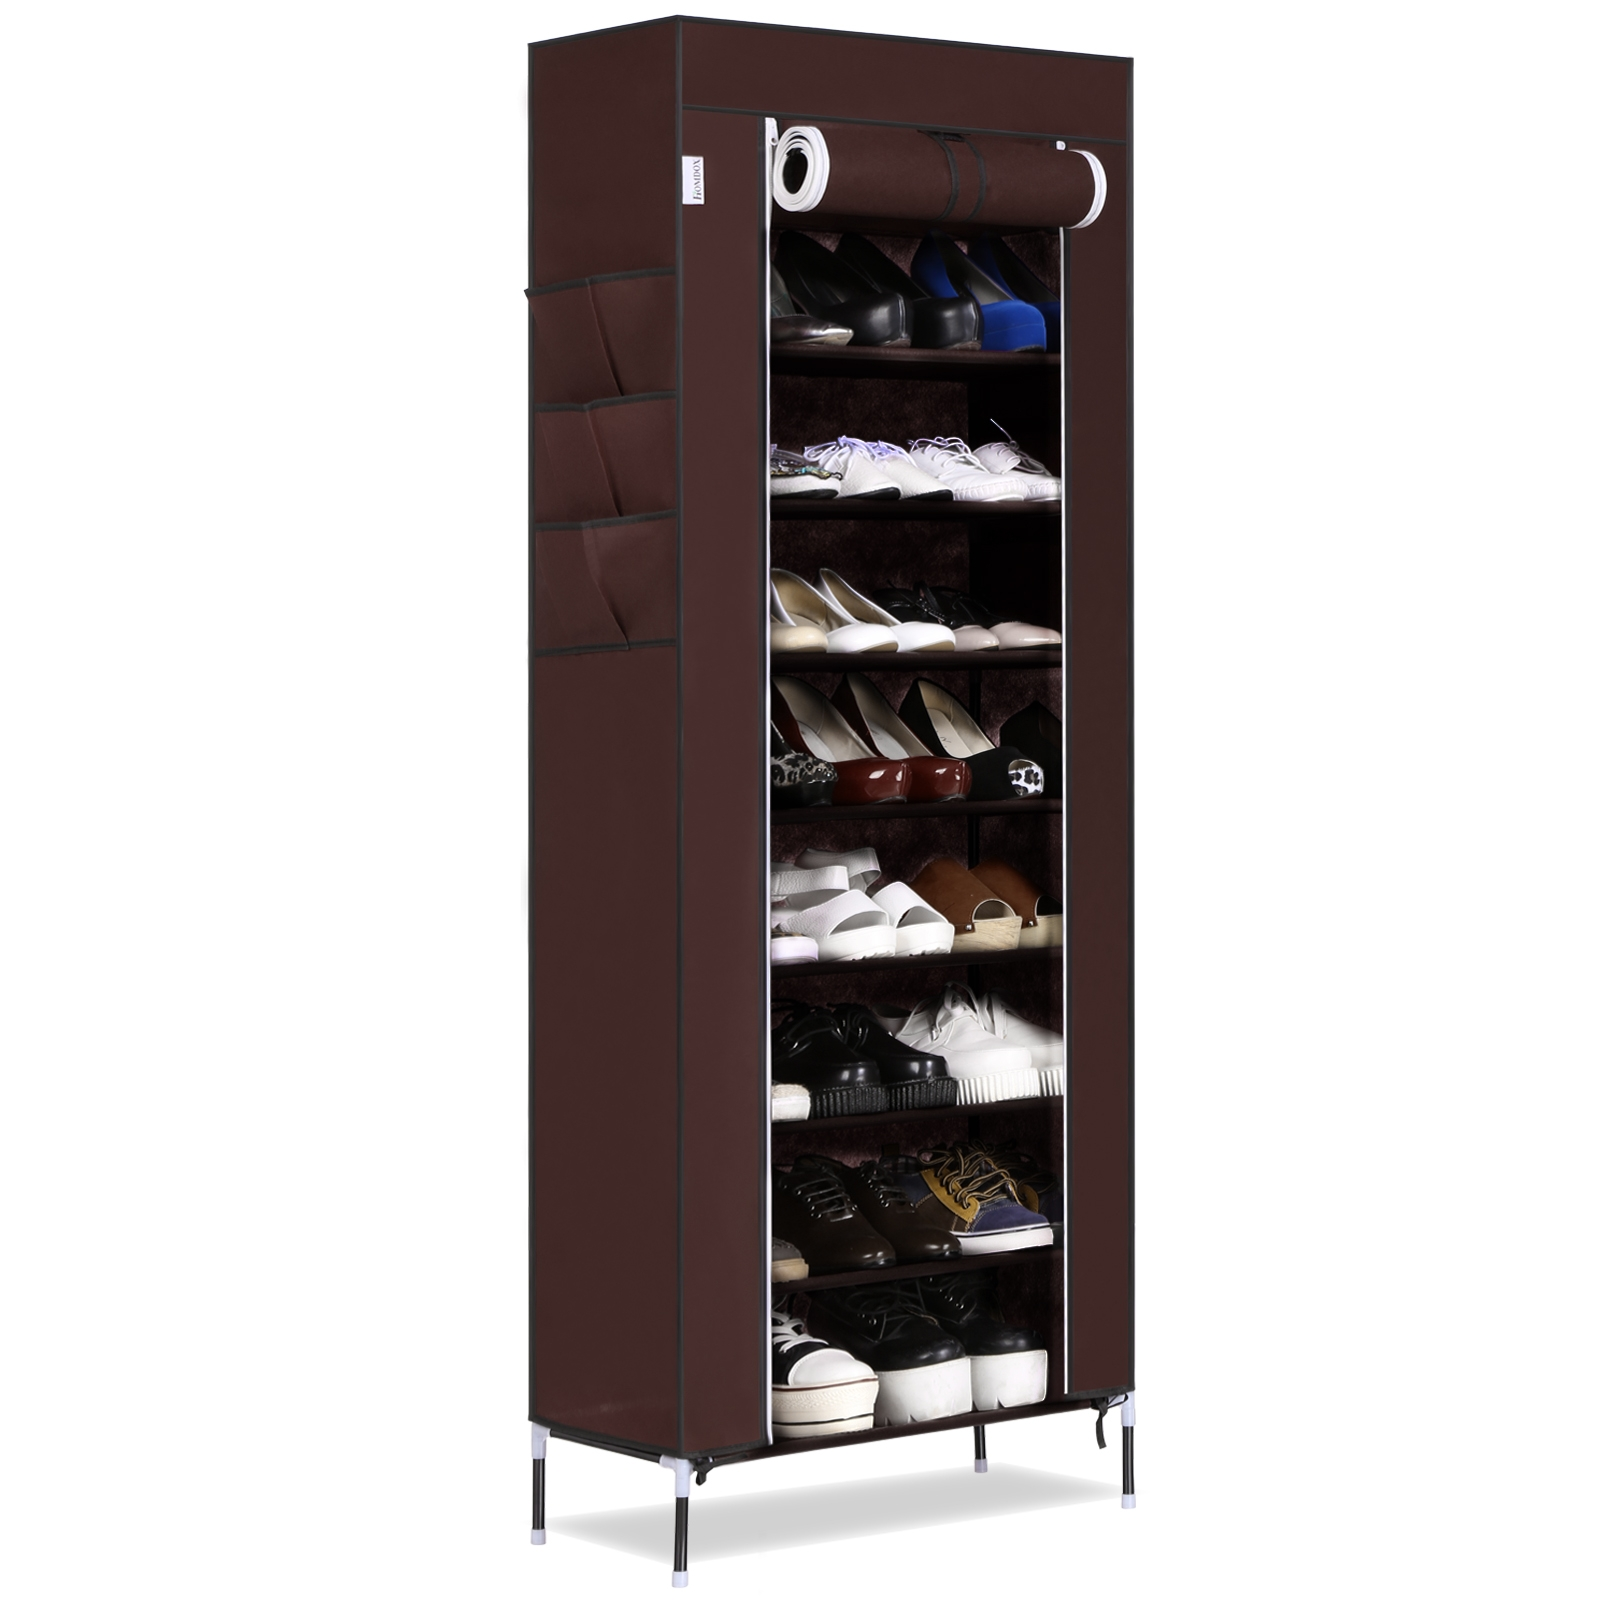 10 Tier 9 Grid Large Capacity Shoes Storage Organizer Portable Shoe Rack with 6 Side HITC